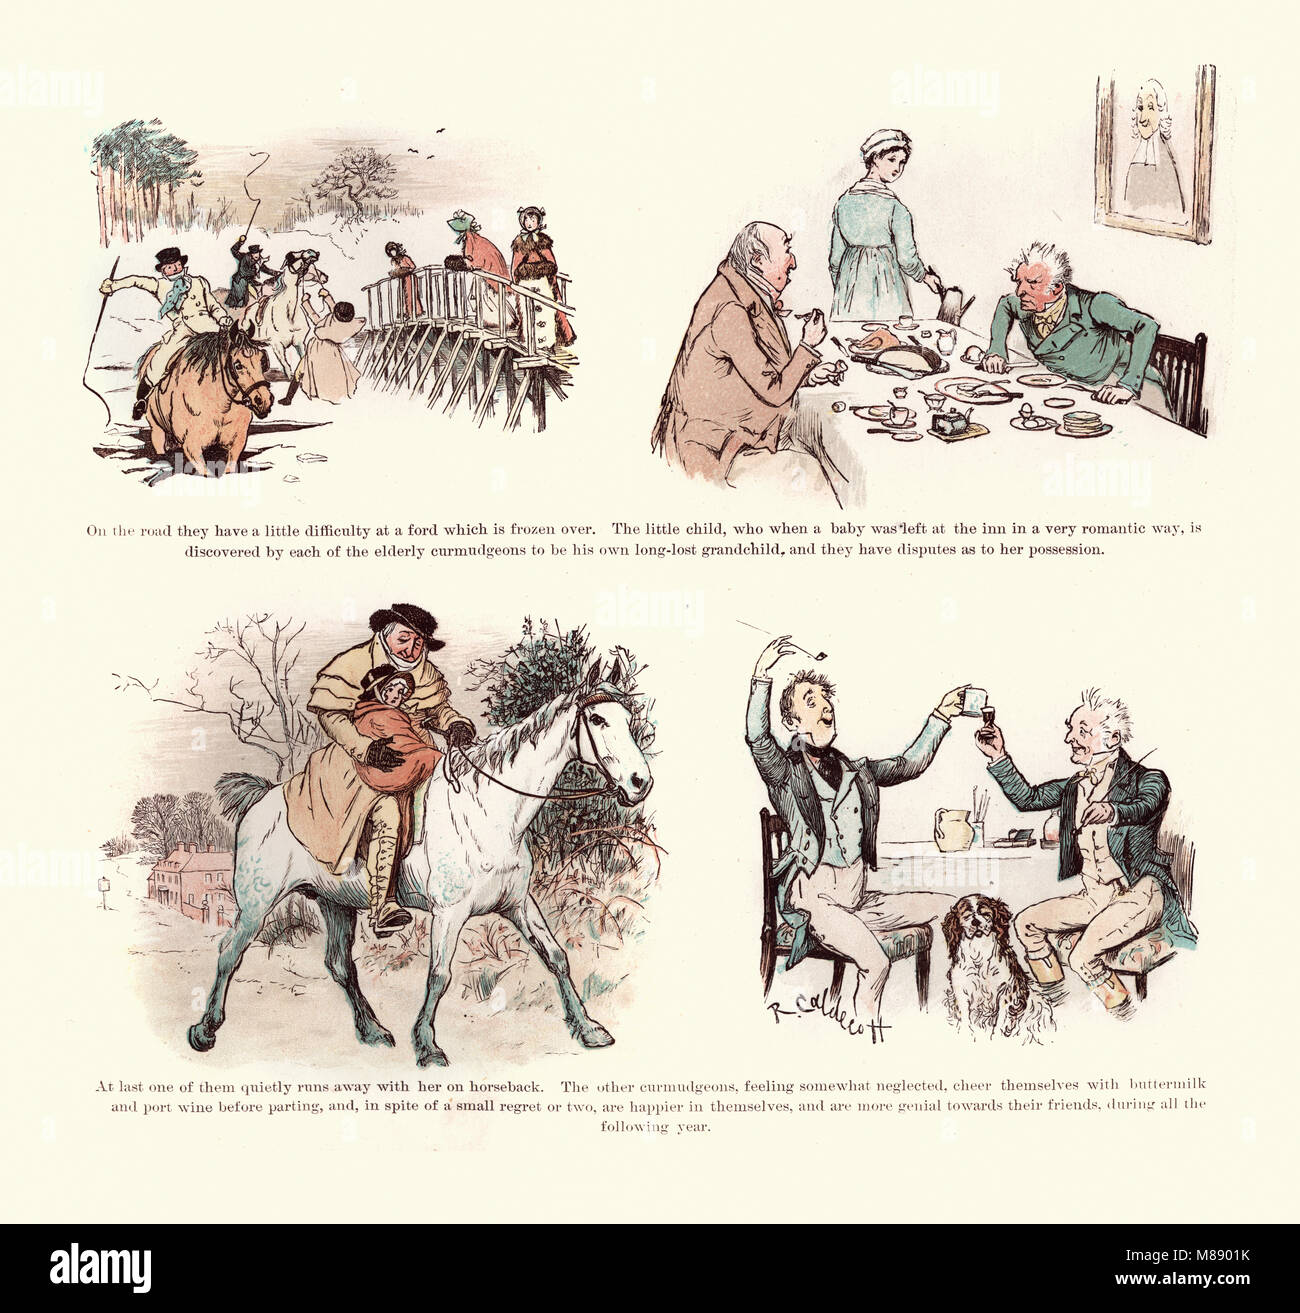 Victorian Illustration from The curmudgeons christmas by  Randolph Caldecott, 19th Century - Stock Image